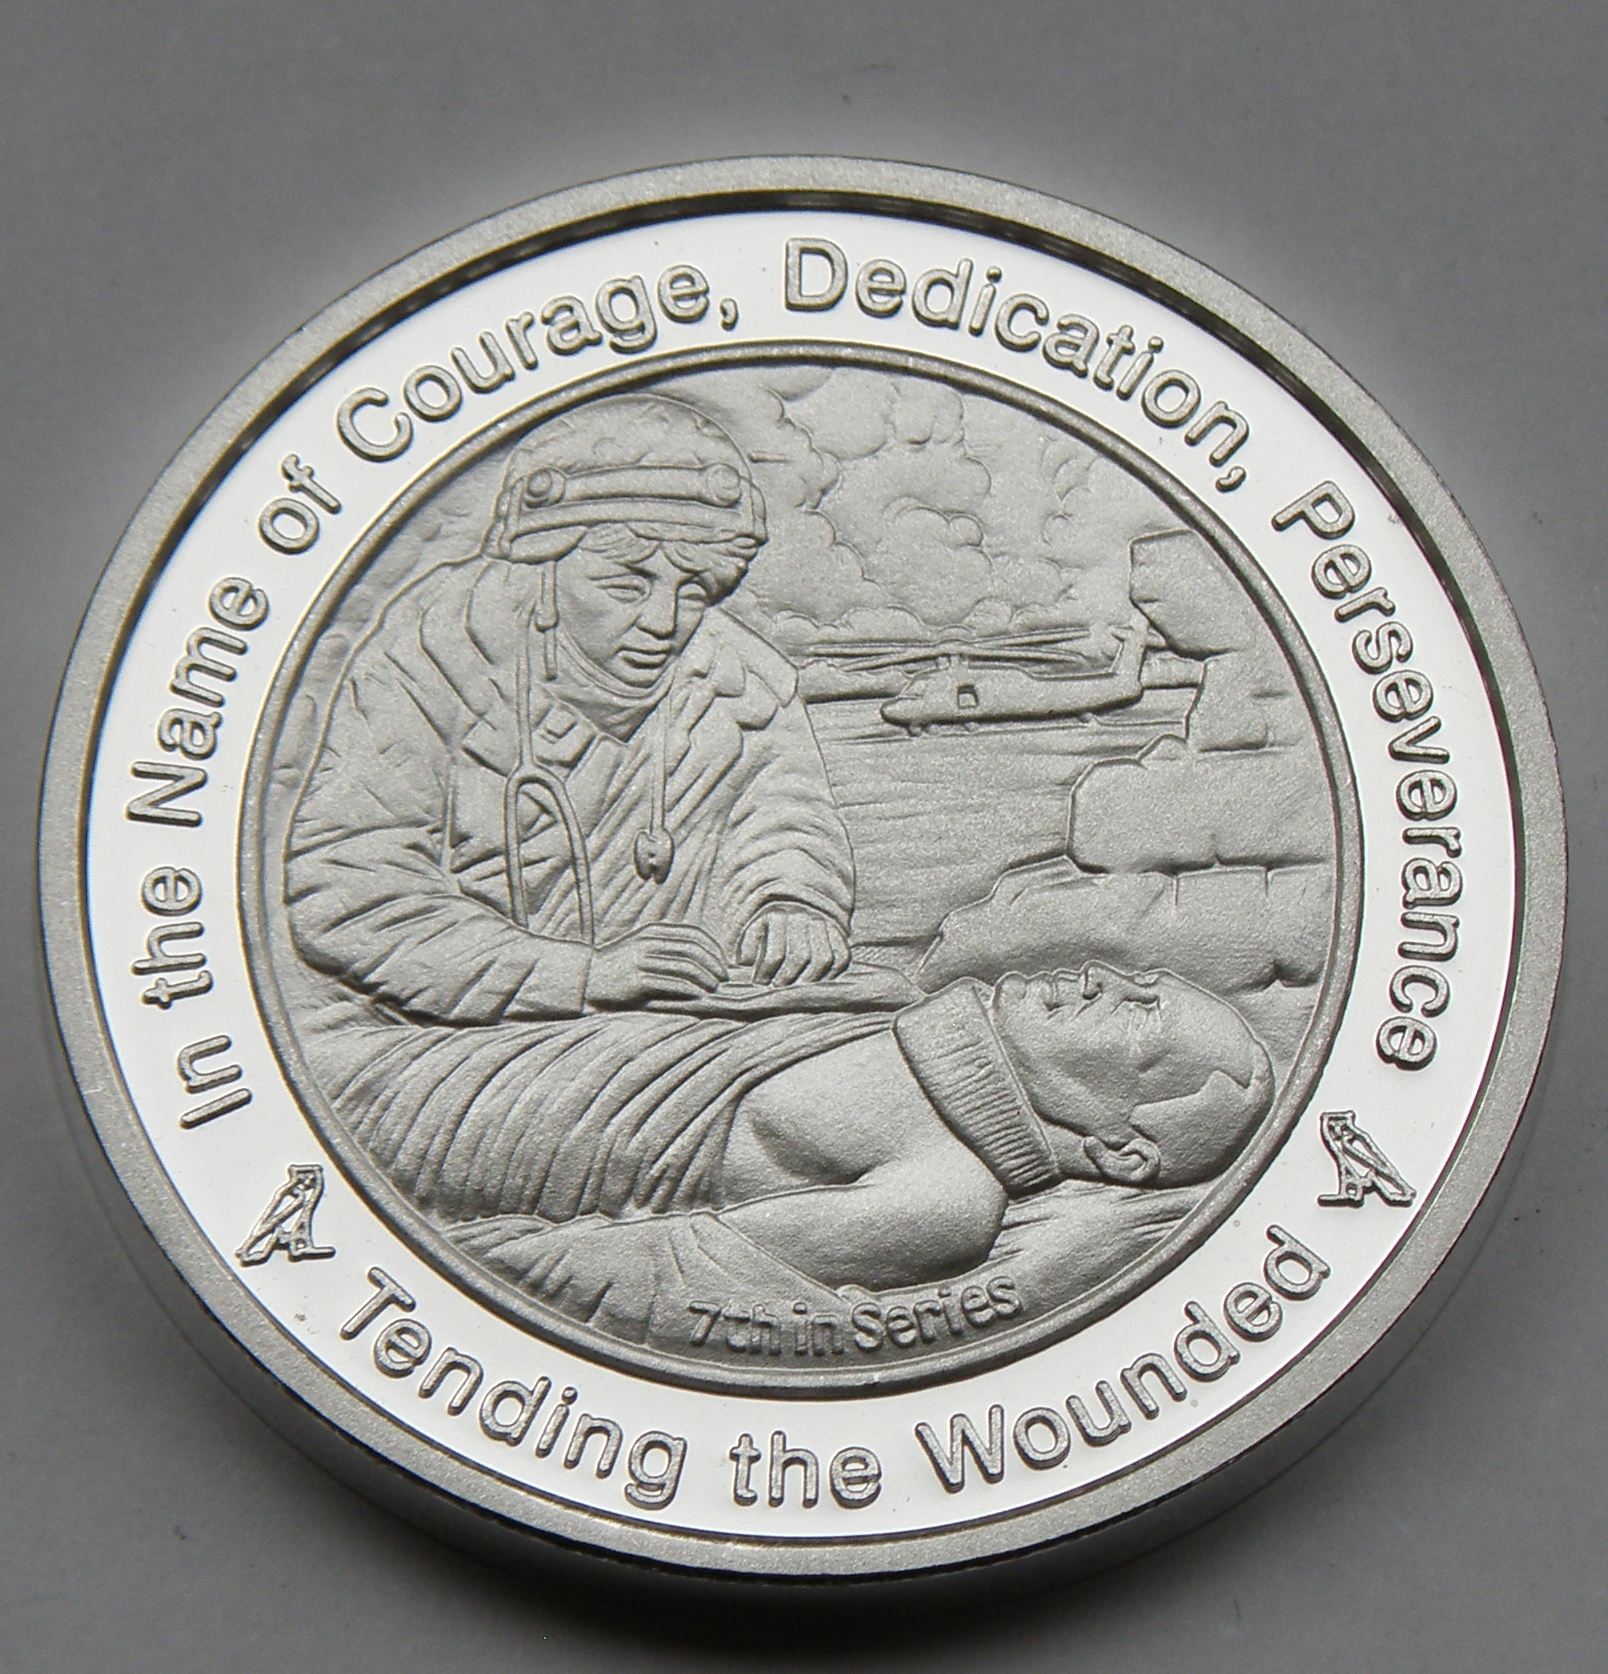 tending the wounded coin in fine silver